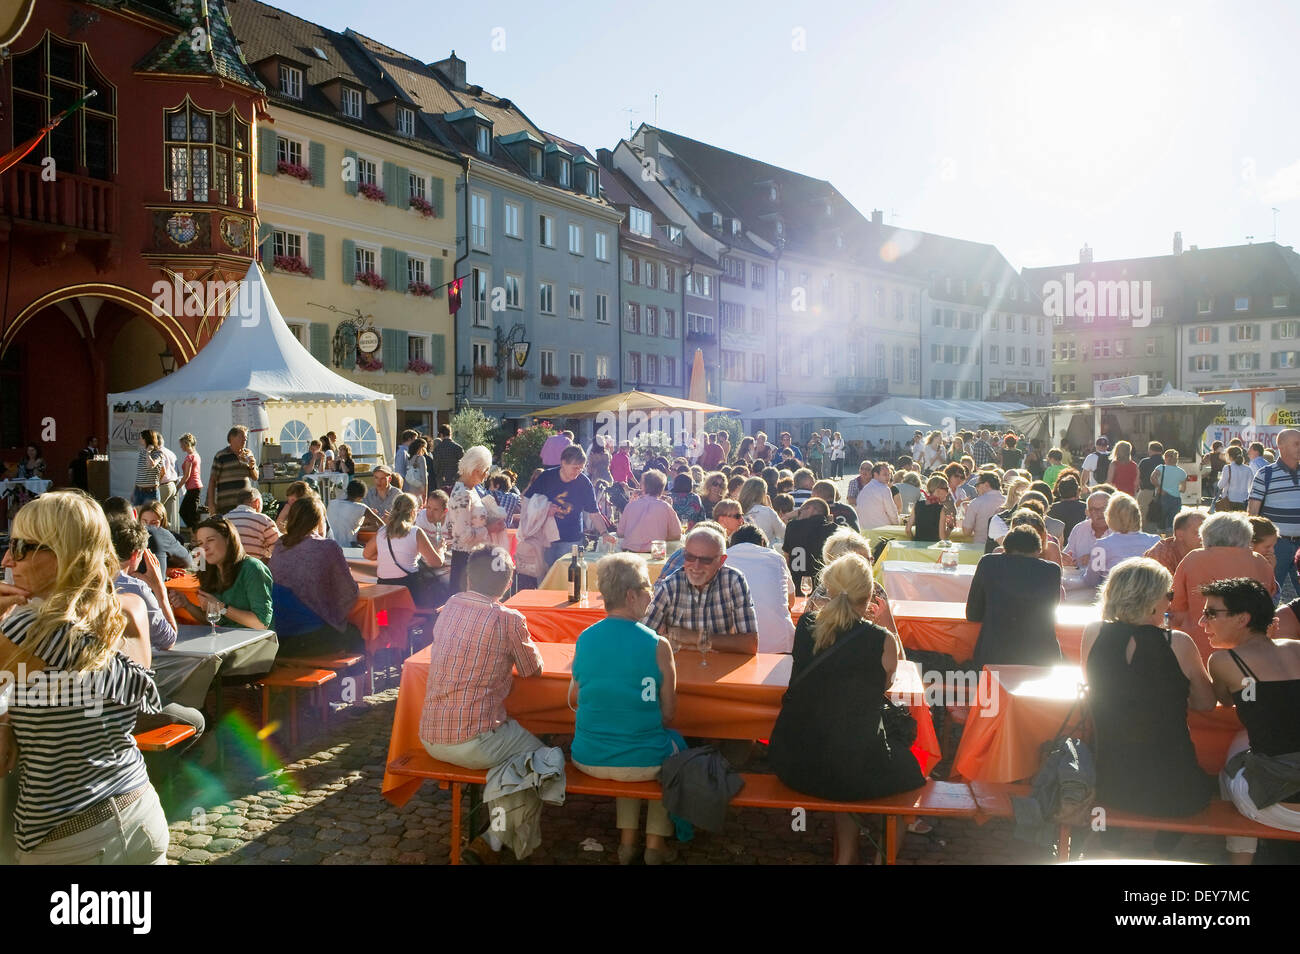 wine festival in muensterplatz square freiburg im breisgau black stock photo 60835052 alamy. Black Bedroom Furniture Sets. Home Design Ideas